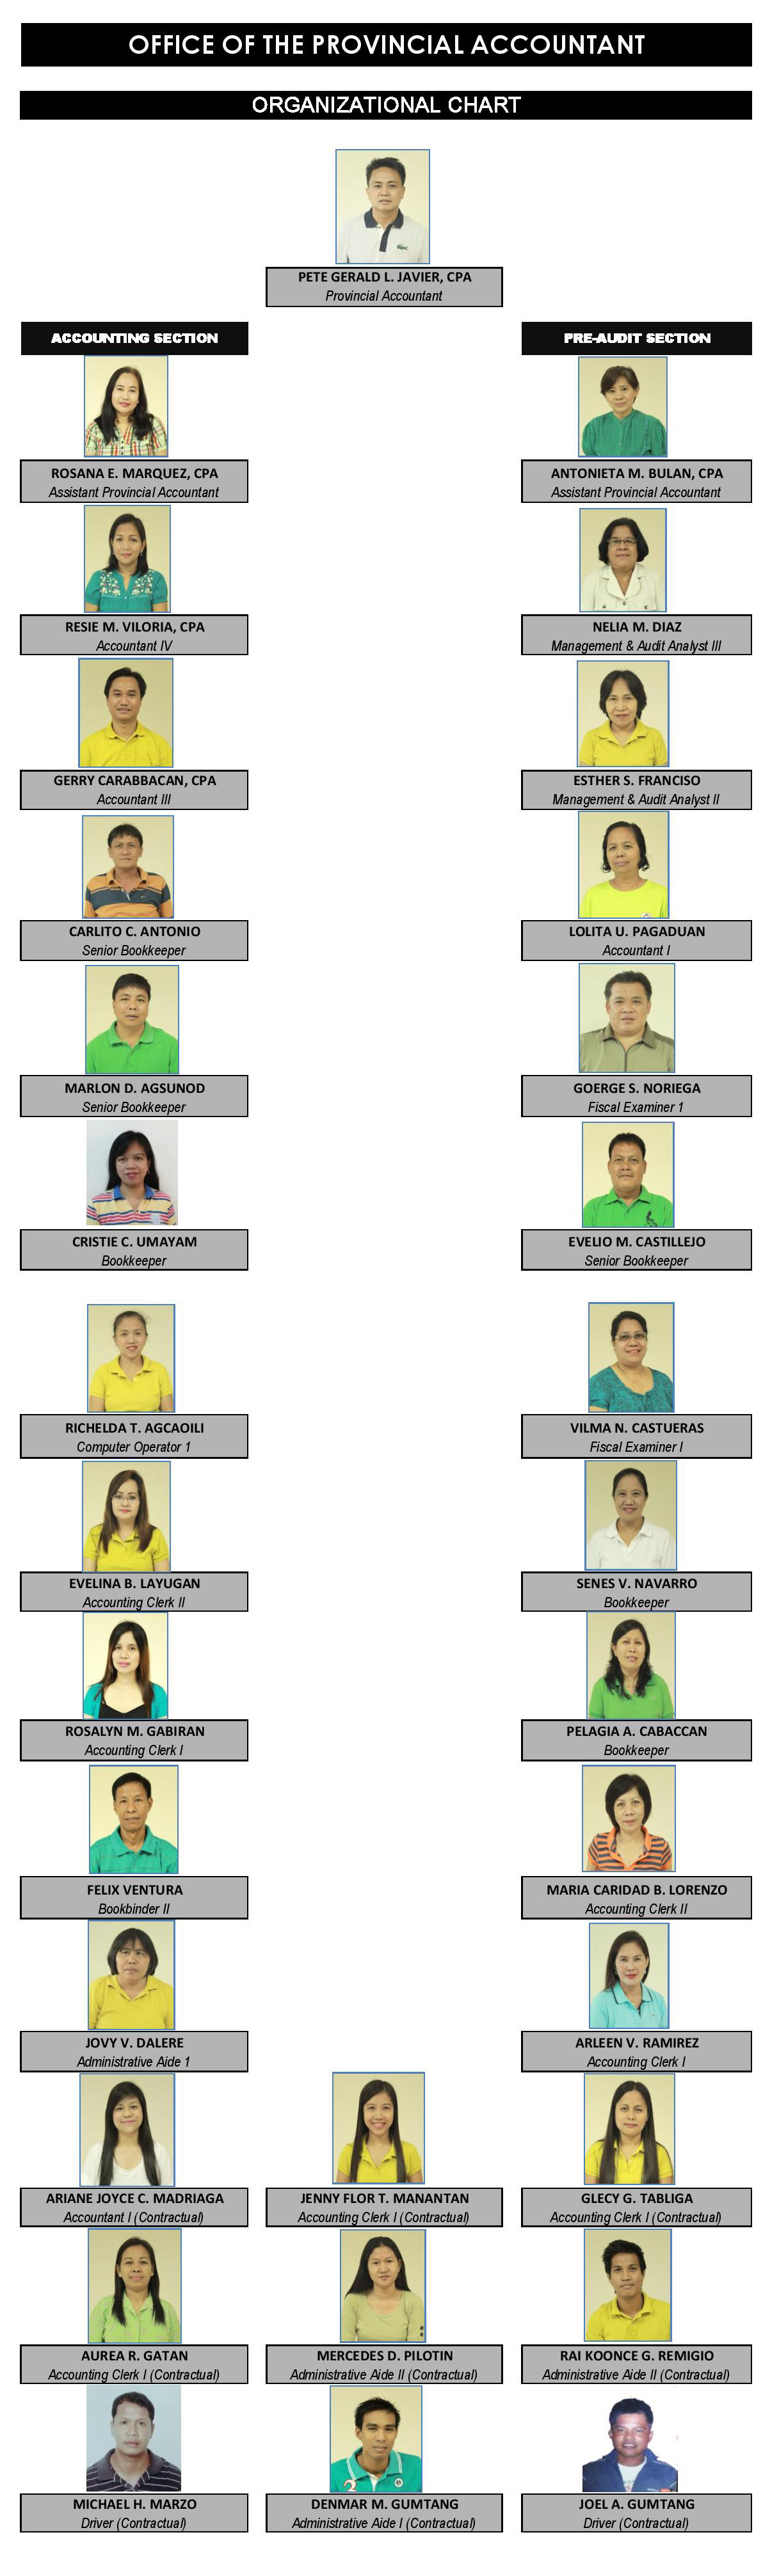 Provincial Accountant's Office Organizational Chart